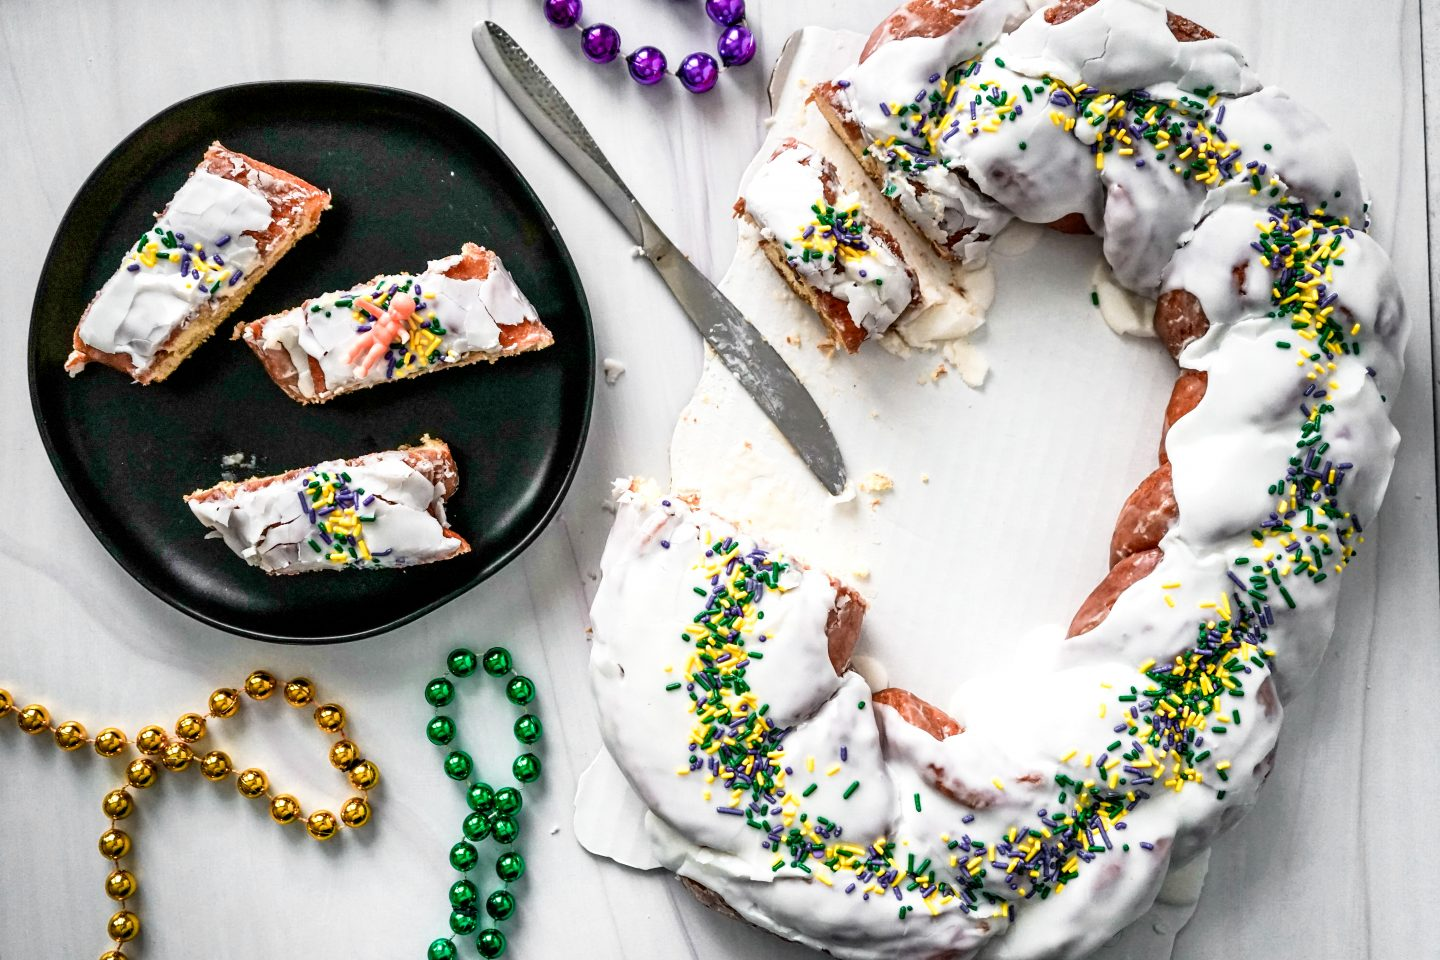 thee heavenly donut king cake